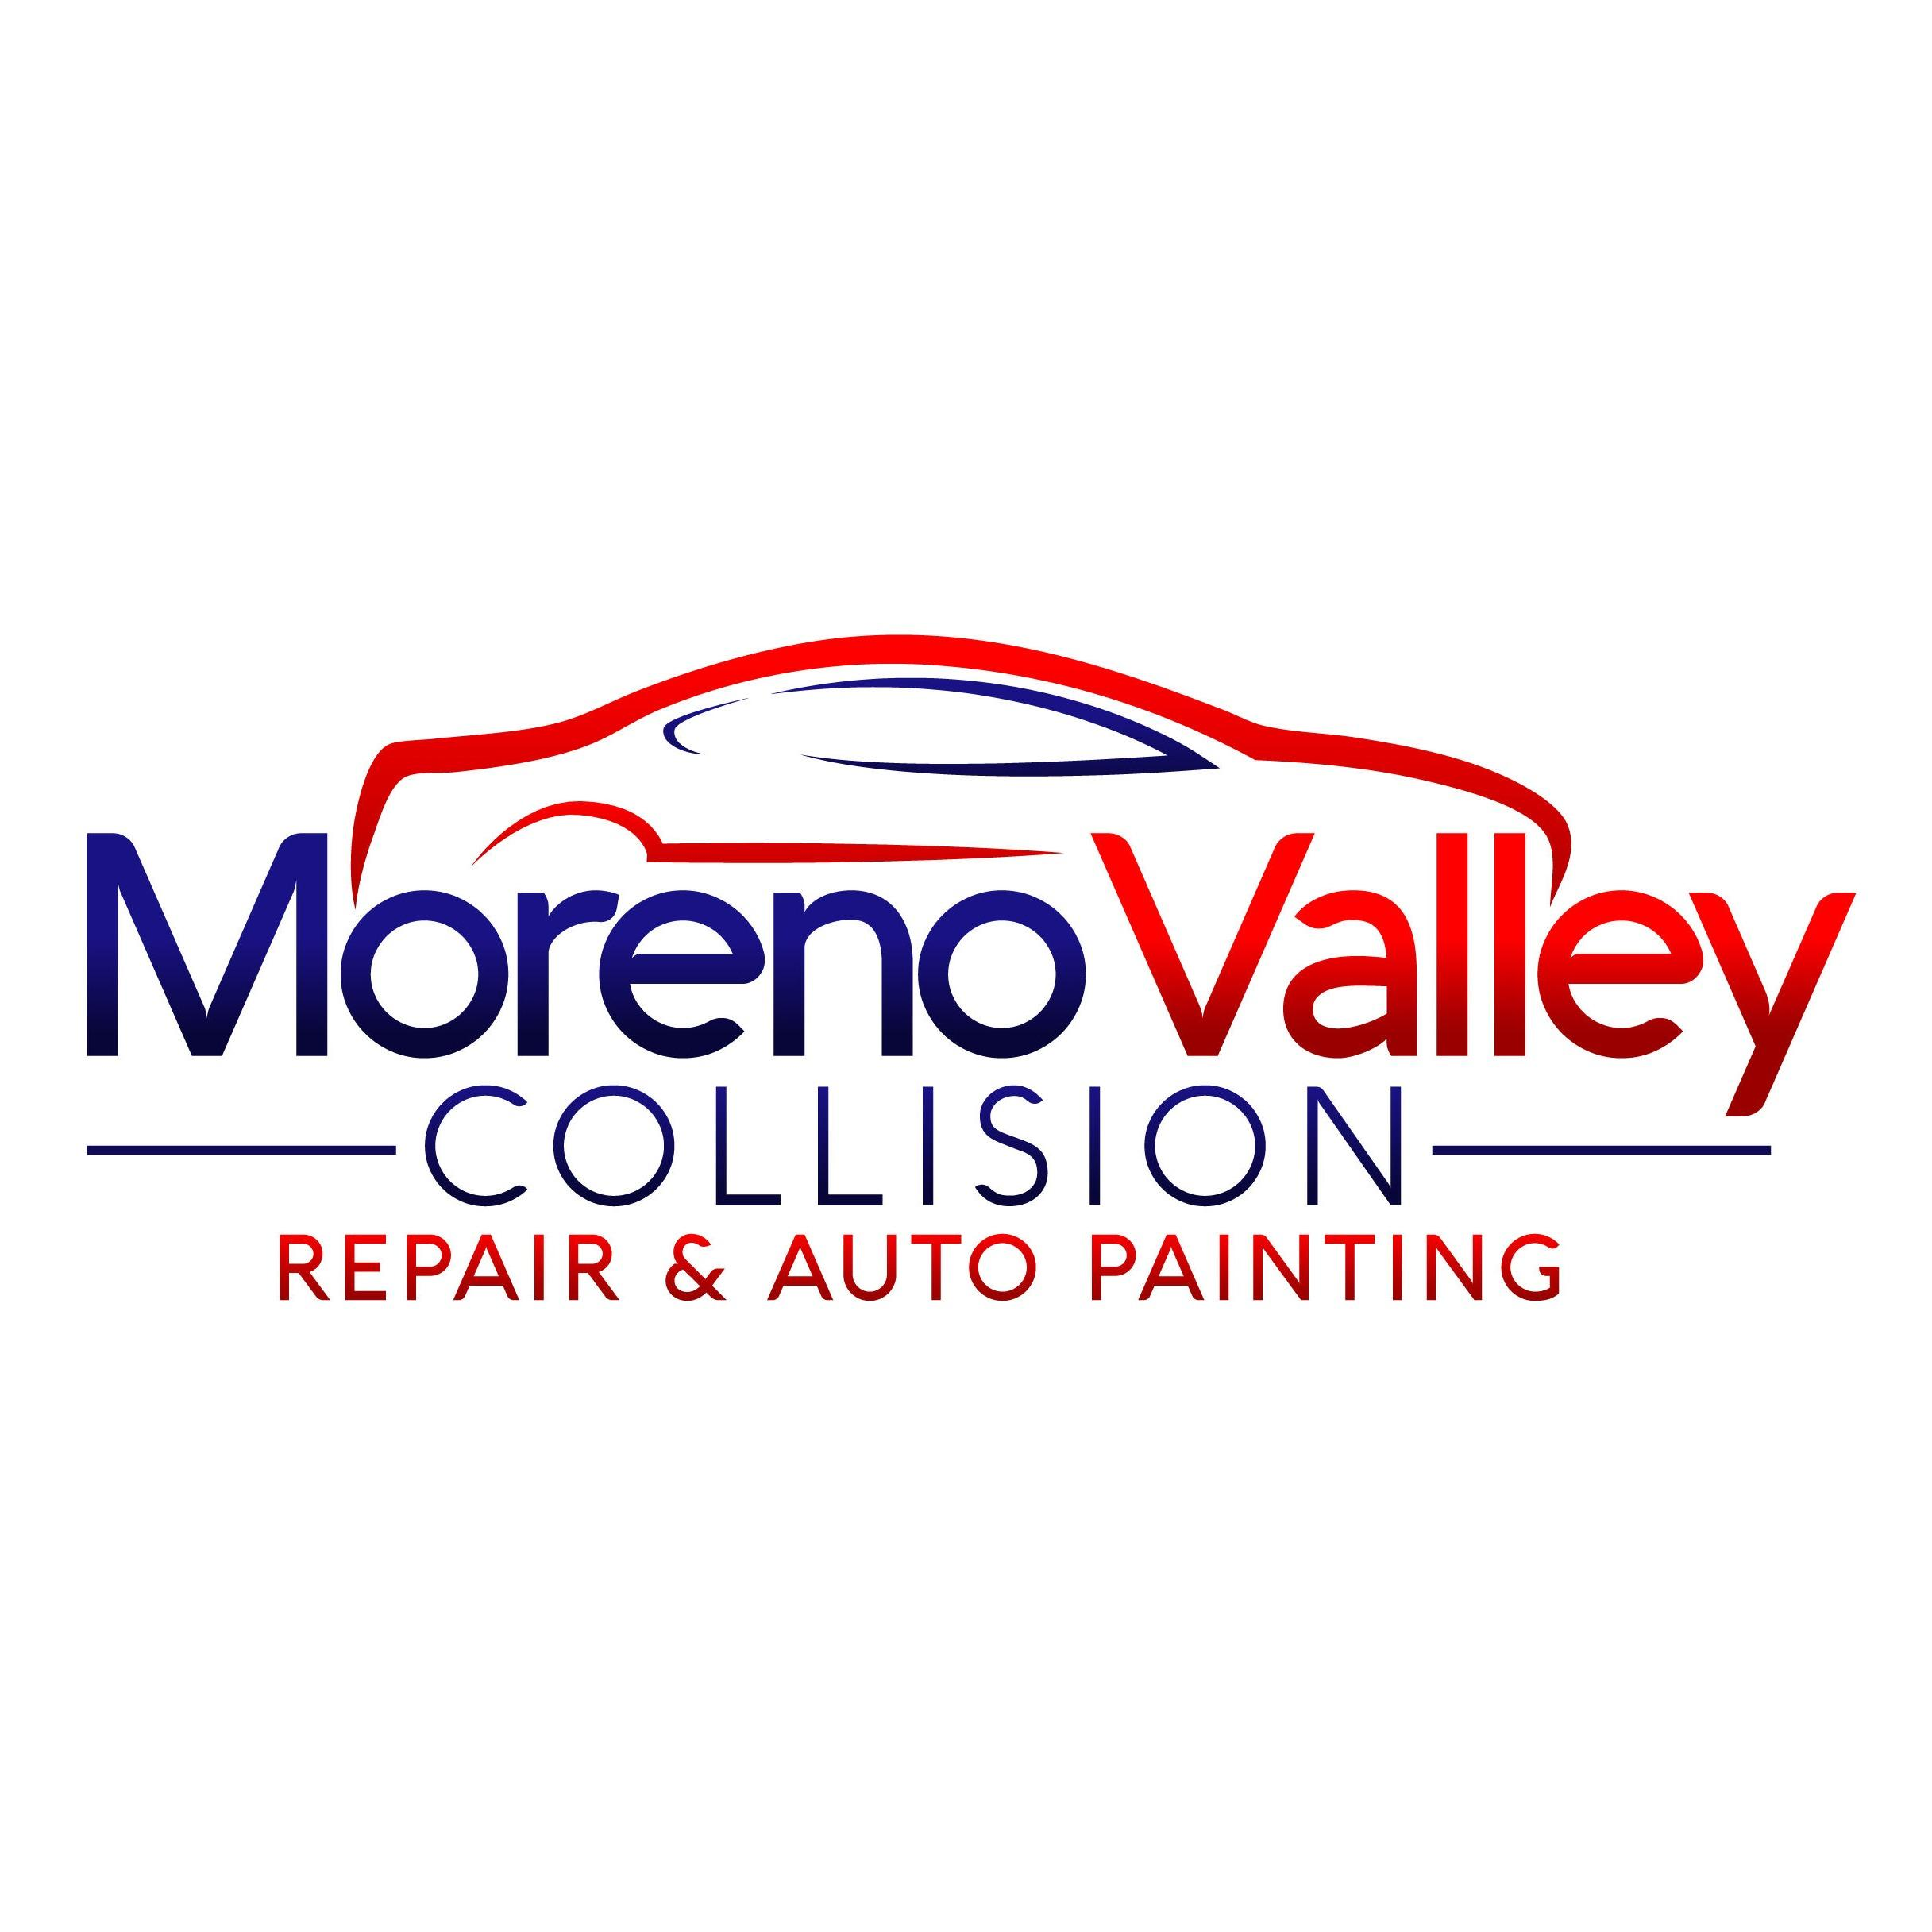 Maaco Collision Repair & Auto Painting - Moreno Valley, CA 92553 - (951) 842-3317 | ShowMeLocal.com